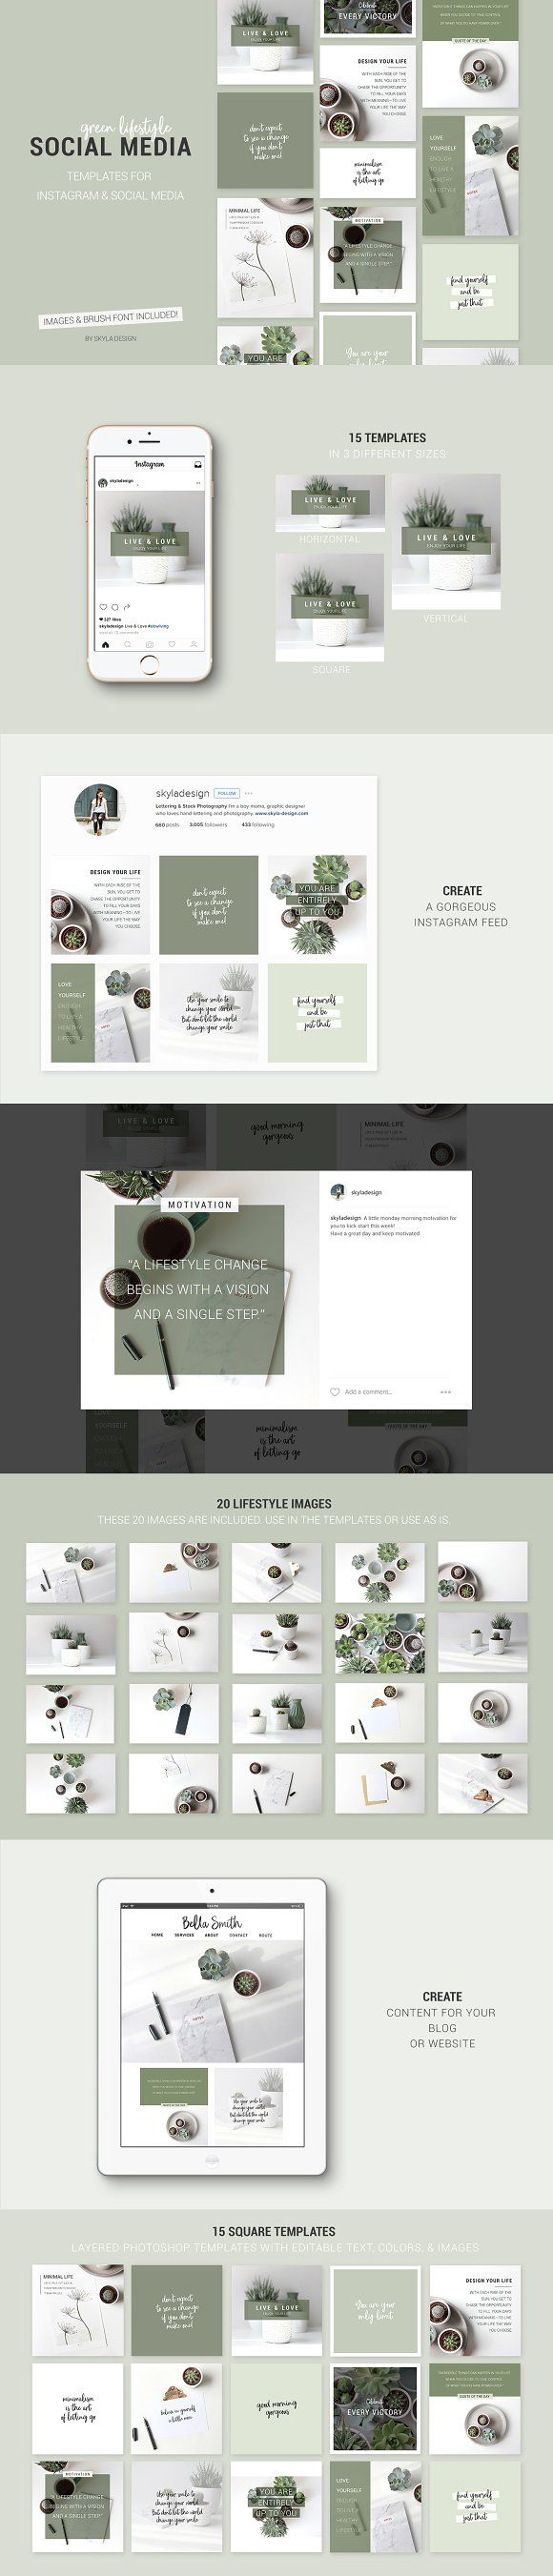 INTRO SALE Social Media templates by Skyla Design on @creativemarket